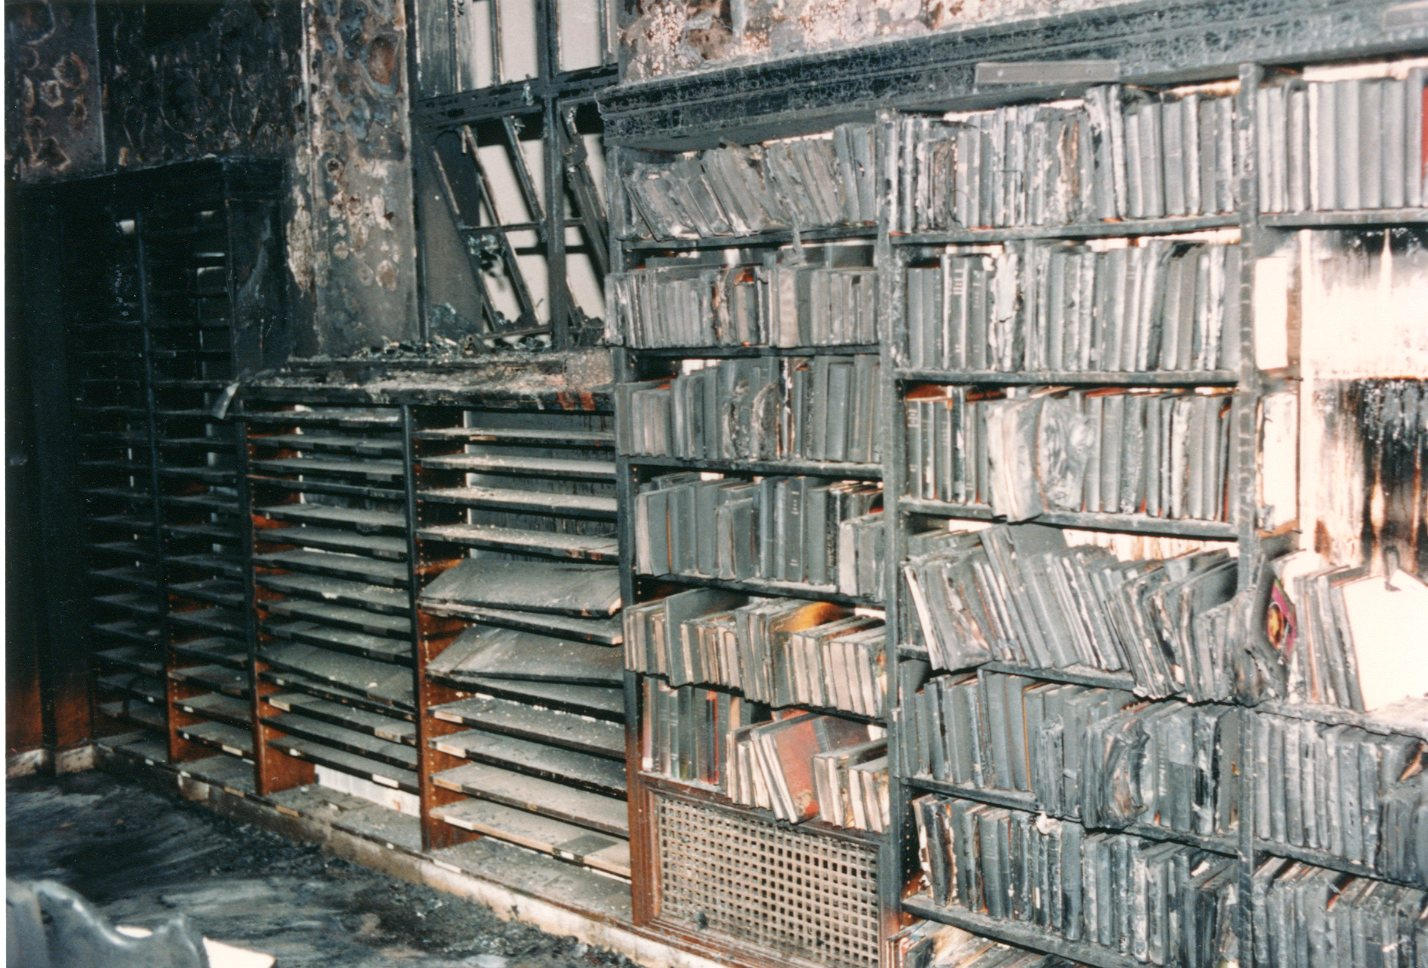 Central Library Burned Books